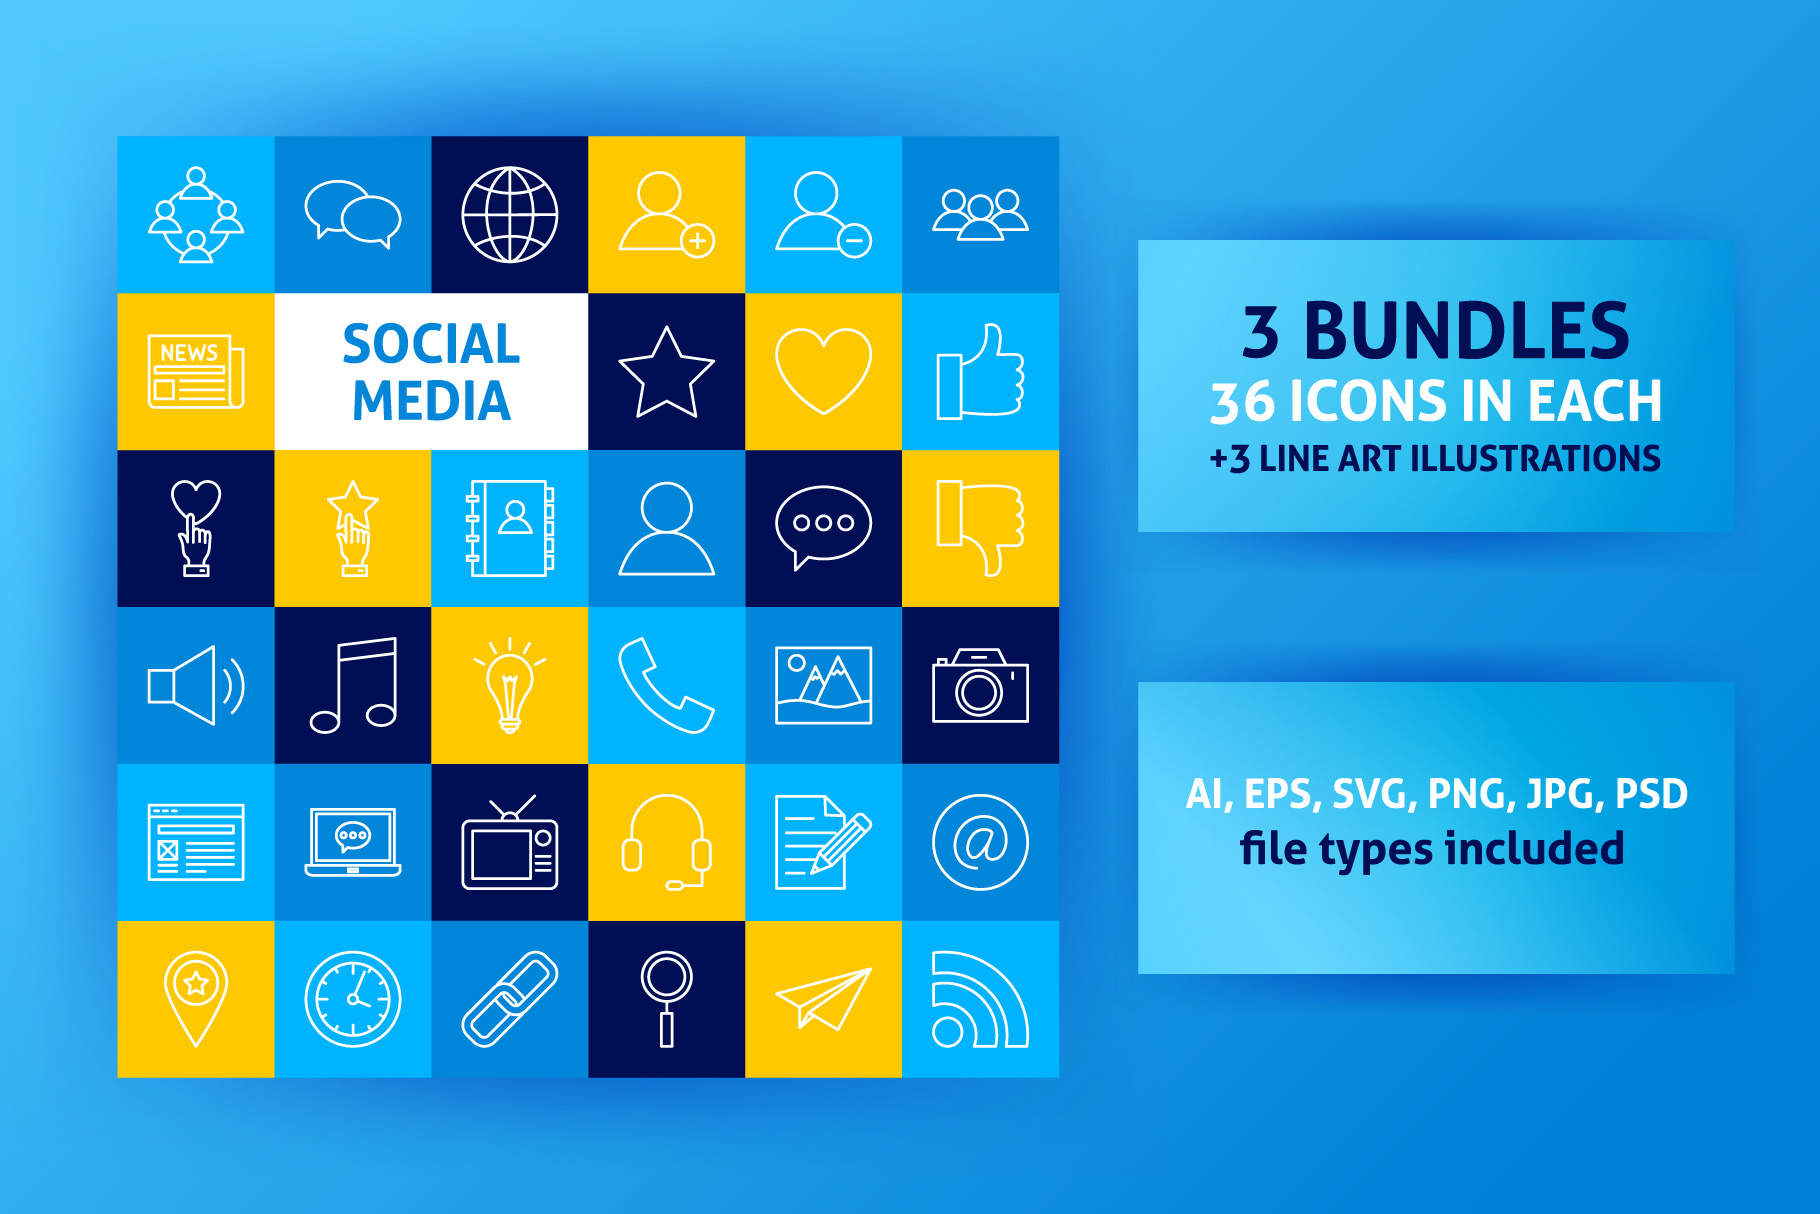 Social Media Line Art Icons example image 1